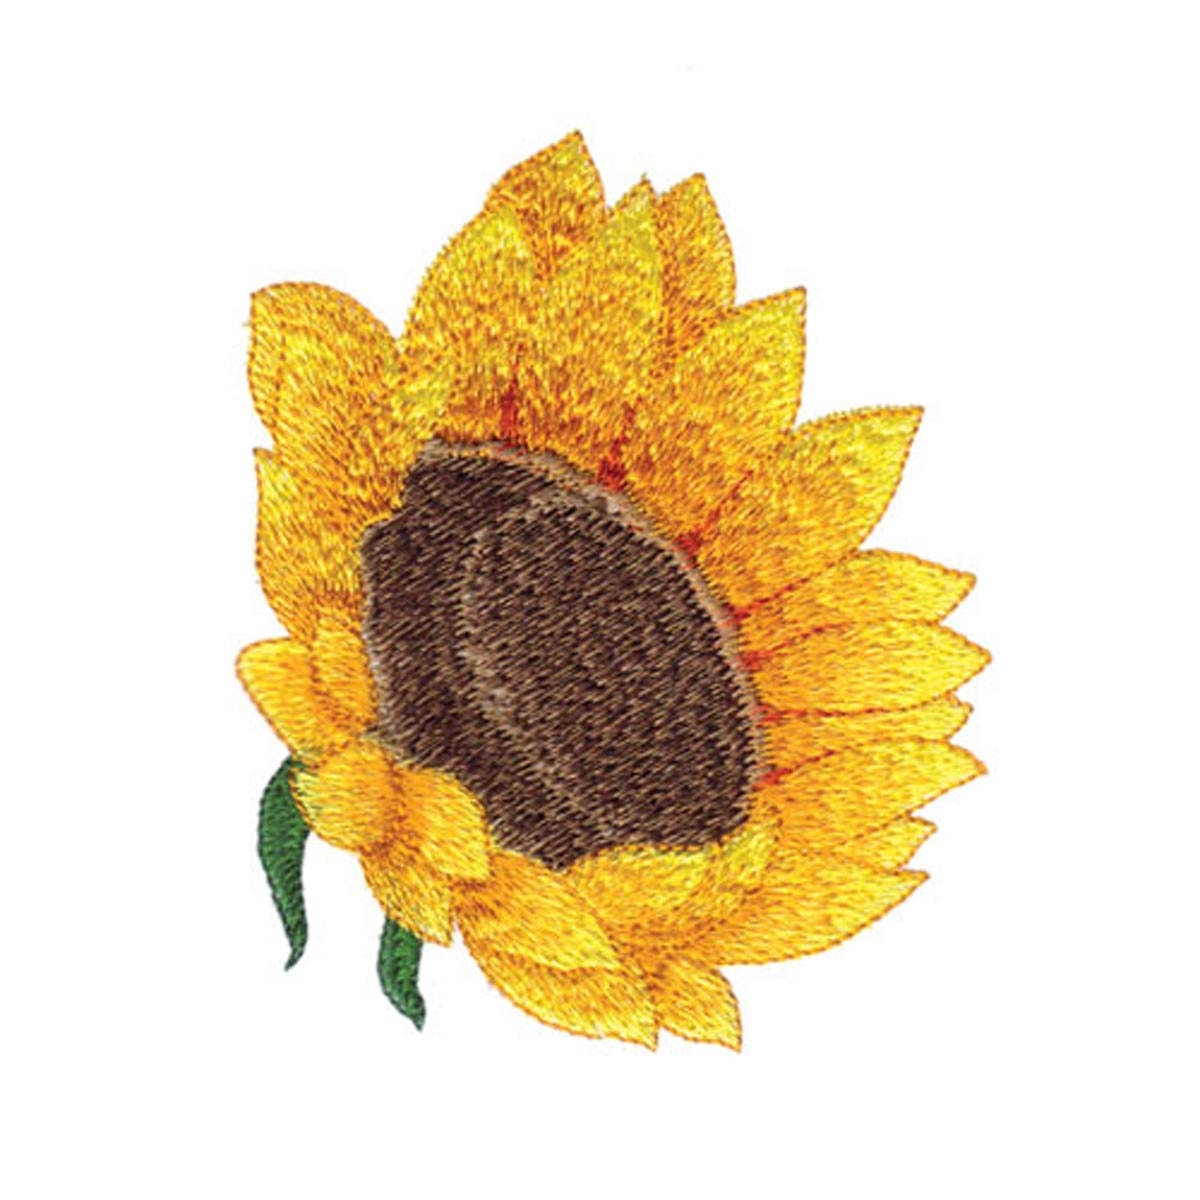 Sunflower Embroidery Pattern Sunflower Embroidery Design